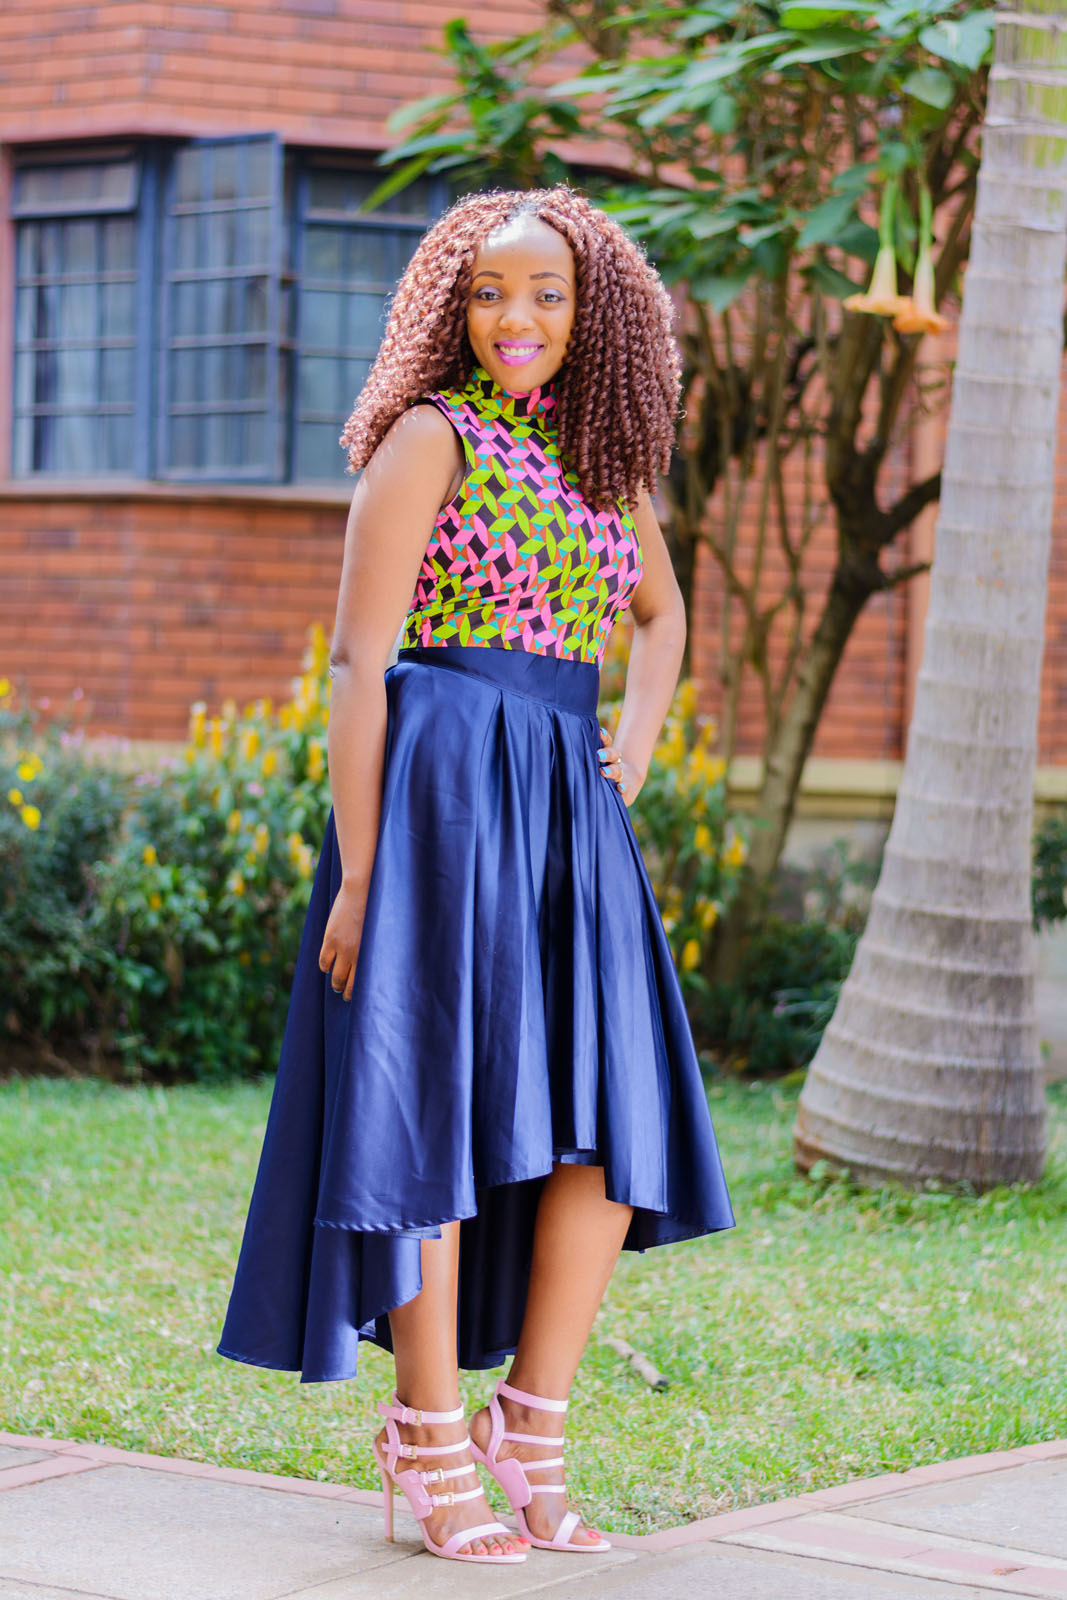 wanjiru-kariuki-church-fashion-11